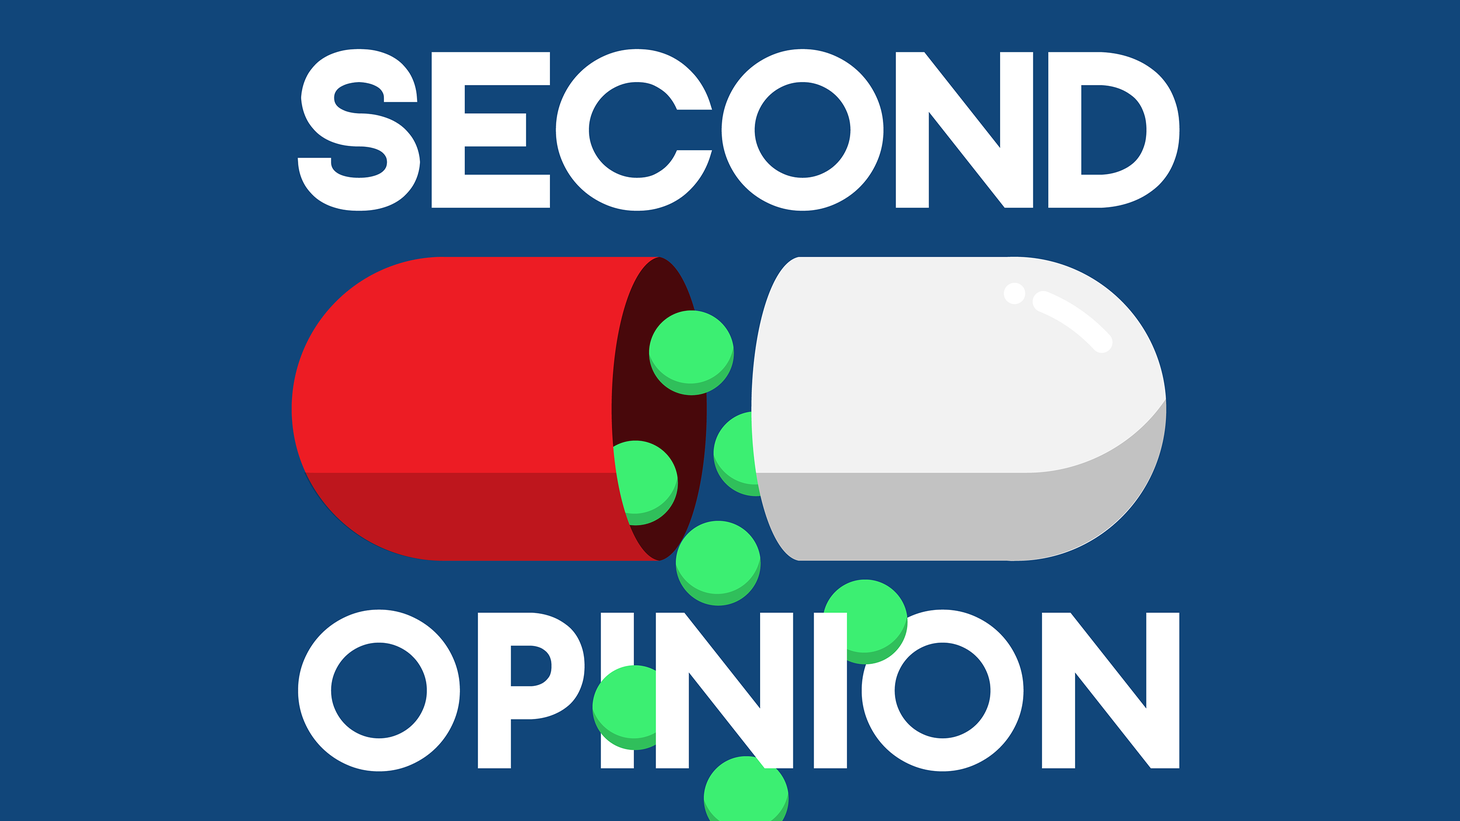 There are several explanations for why new medicine appear to work better than older medicines...